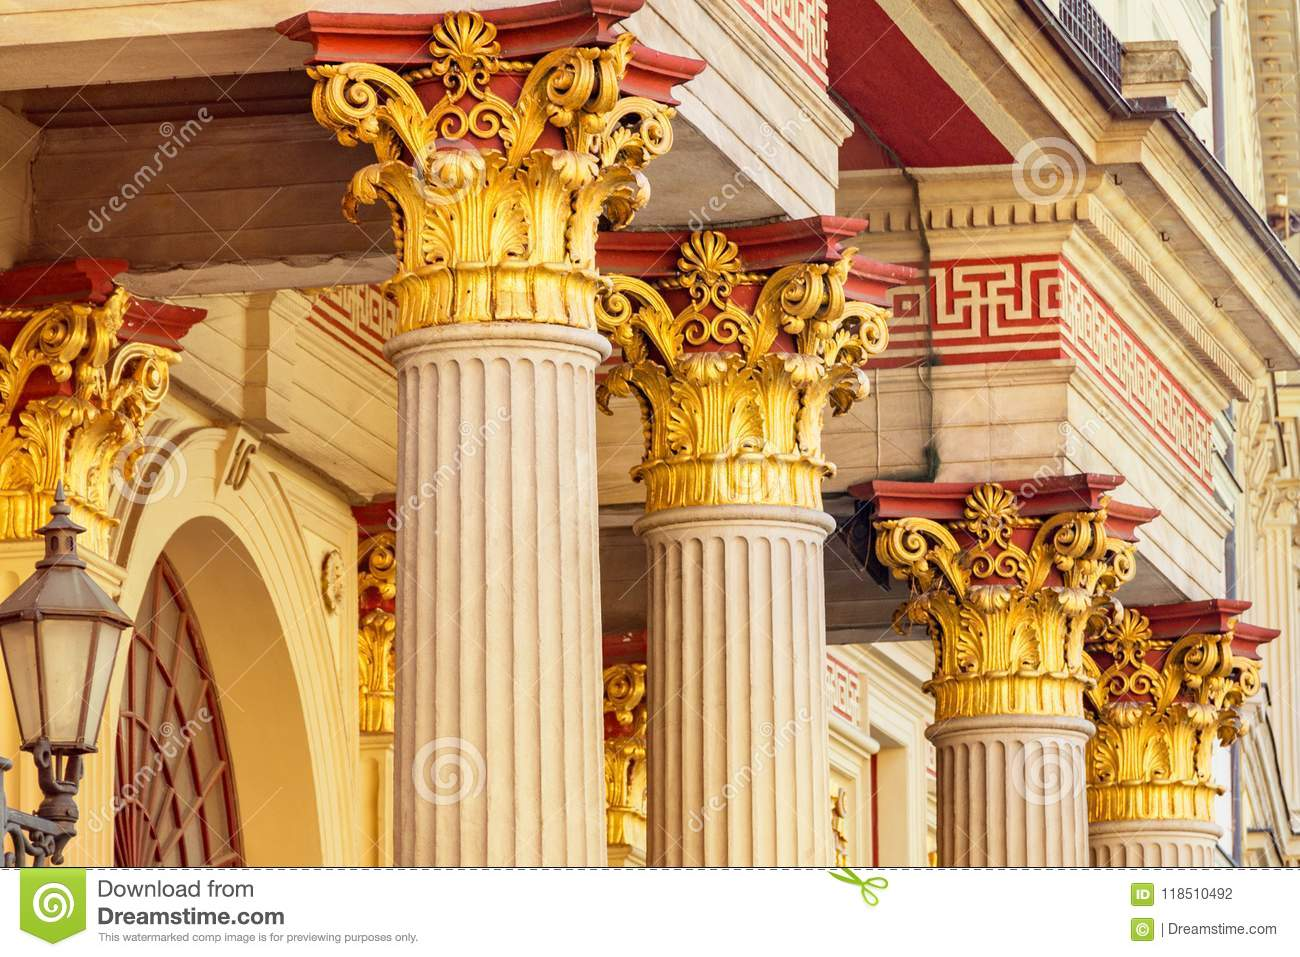 Bright columns of the building, Old courtyard, gilded cola